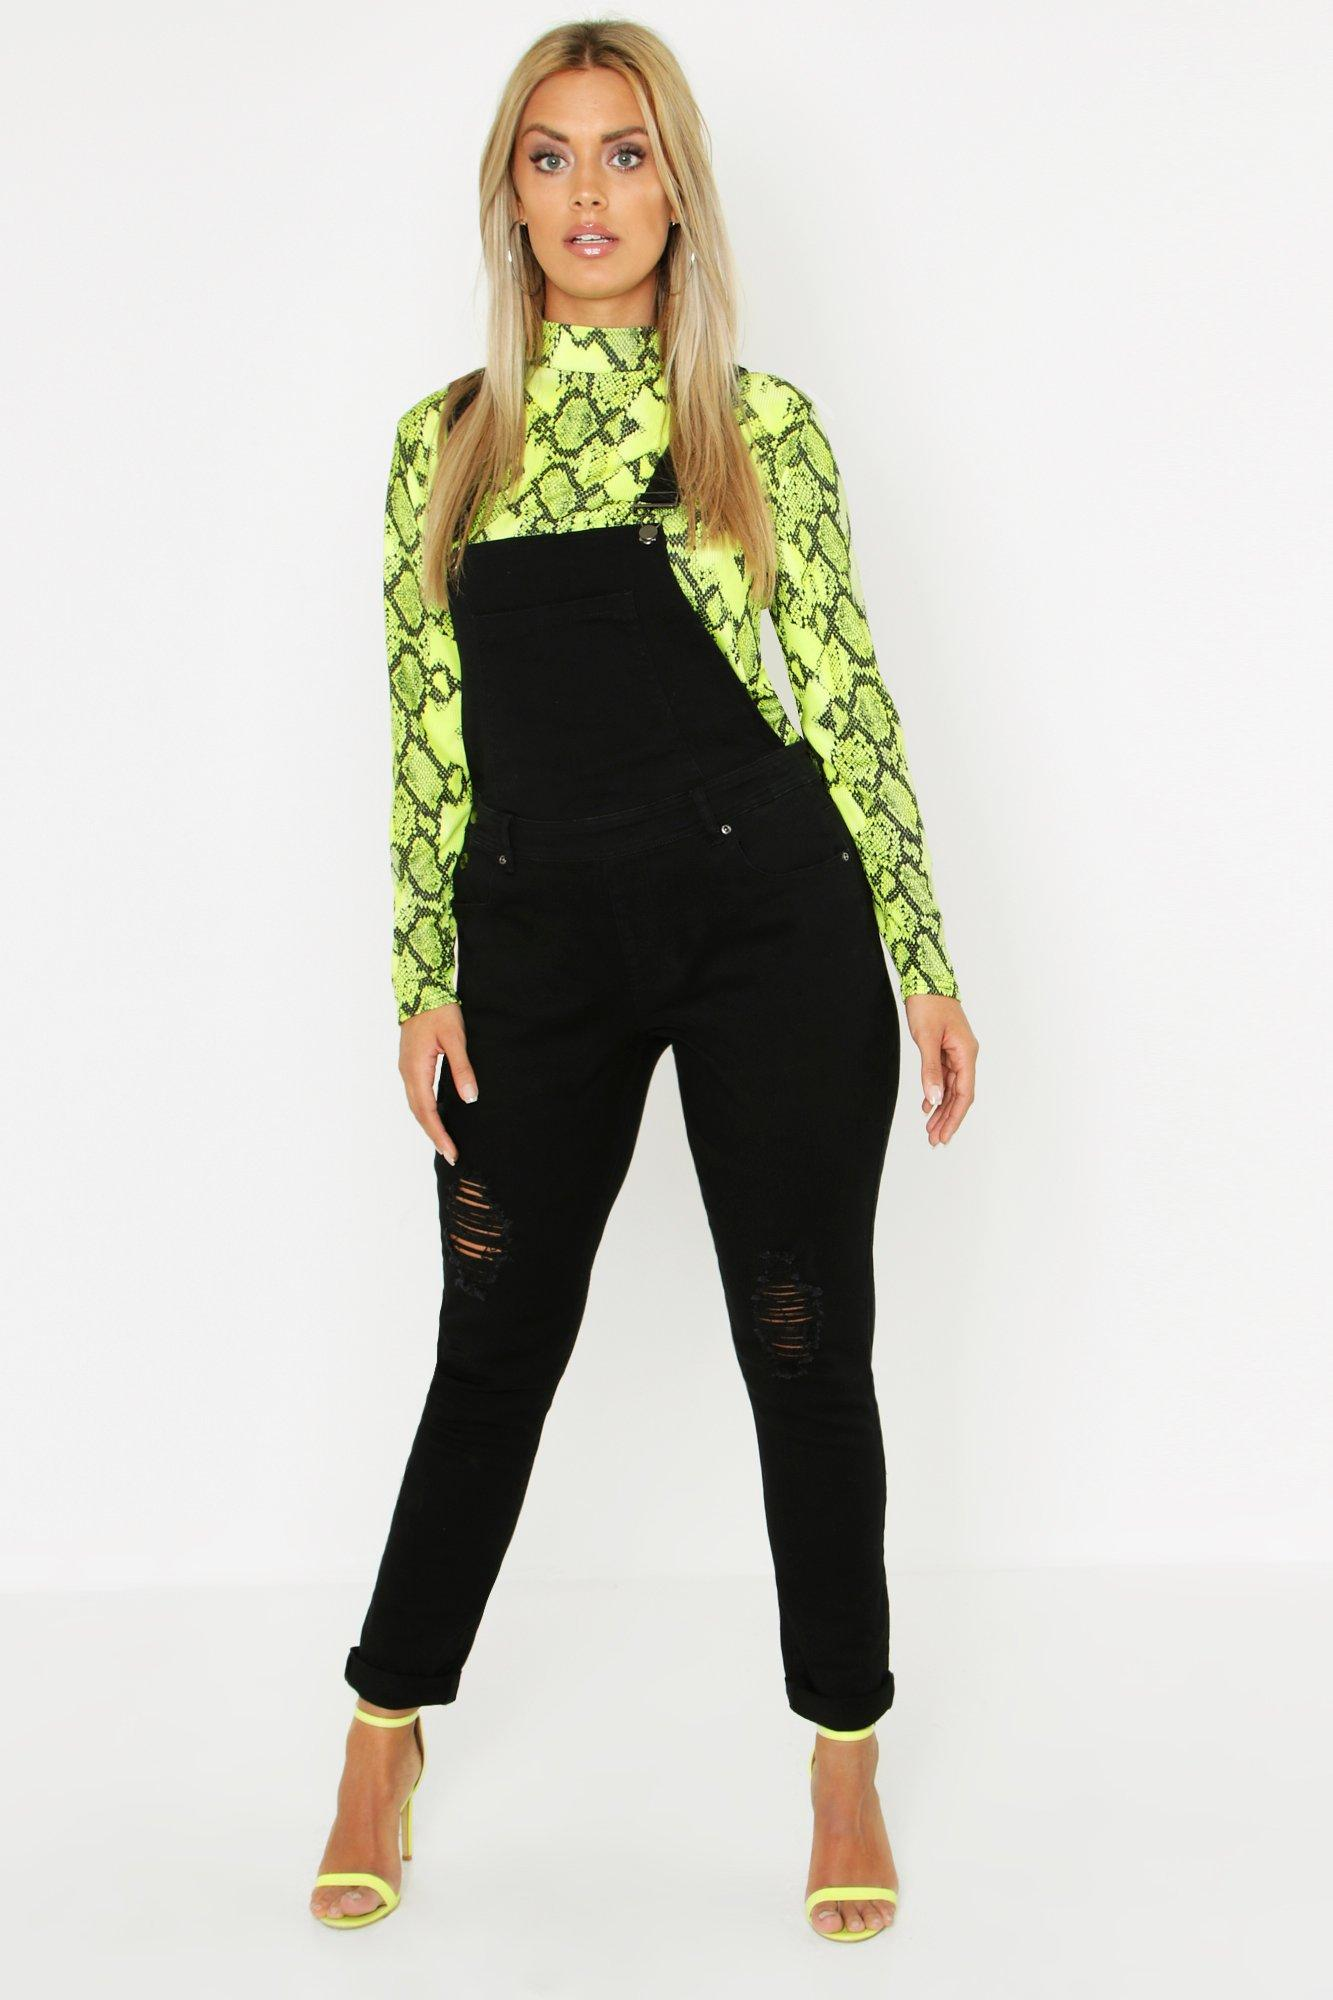 75b9d191fbbd Find the low prices on boohoo plus size curve Compare ratings and study  reviews on Clothing stores to find best deals plus discount offers At: .